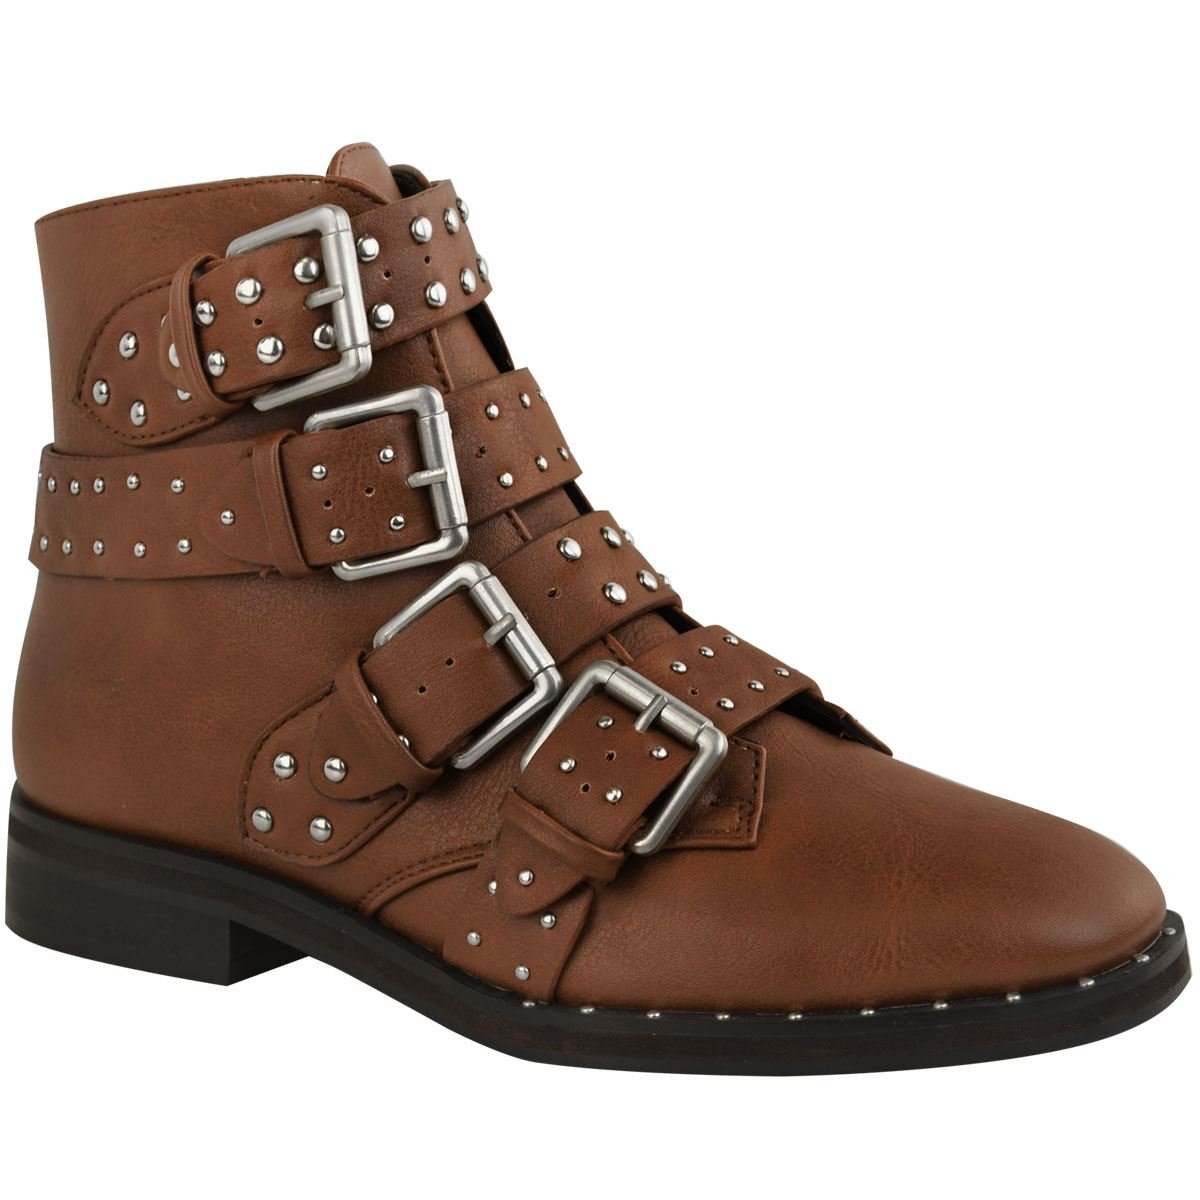 4ac34a9a895f Womens Ladies Flat Studded Strappy Biker Buckles Zip UP Ankle Boots Shoes  Size  Tan Brown Faux Leather Silver Studs UK 3   EU 36   US 5    Amazon.co.uk  ...